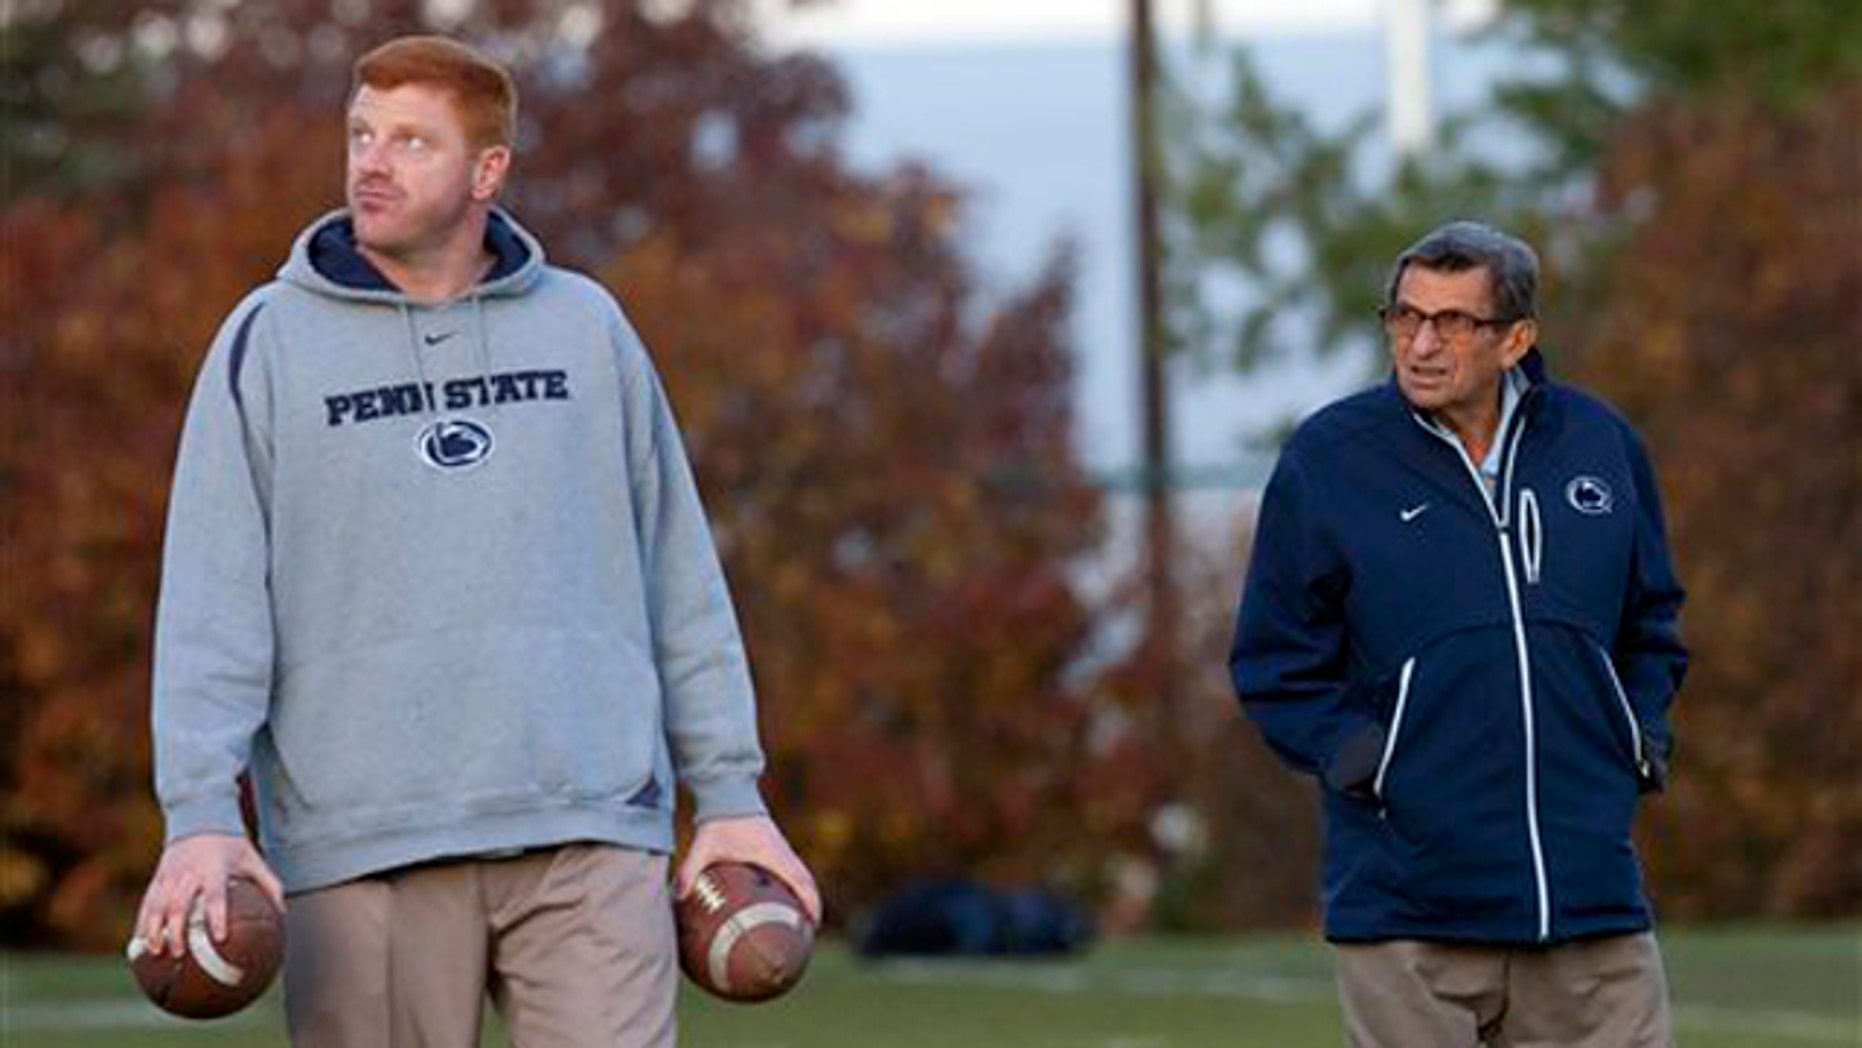 November 9, 2011: Former Penn State football coach Joe Paterno, right, and assistant coach Mike McQueary walk the field during practice.